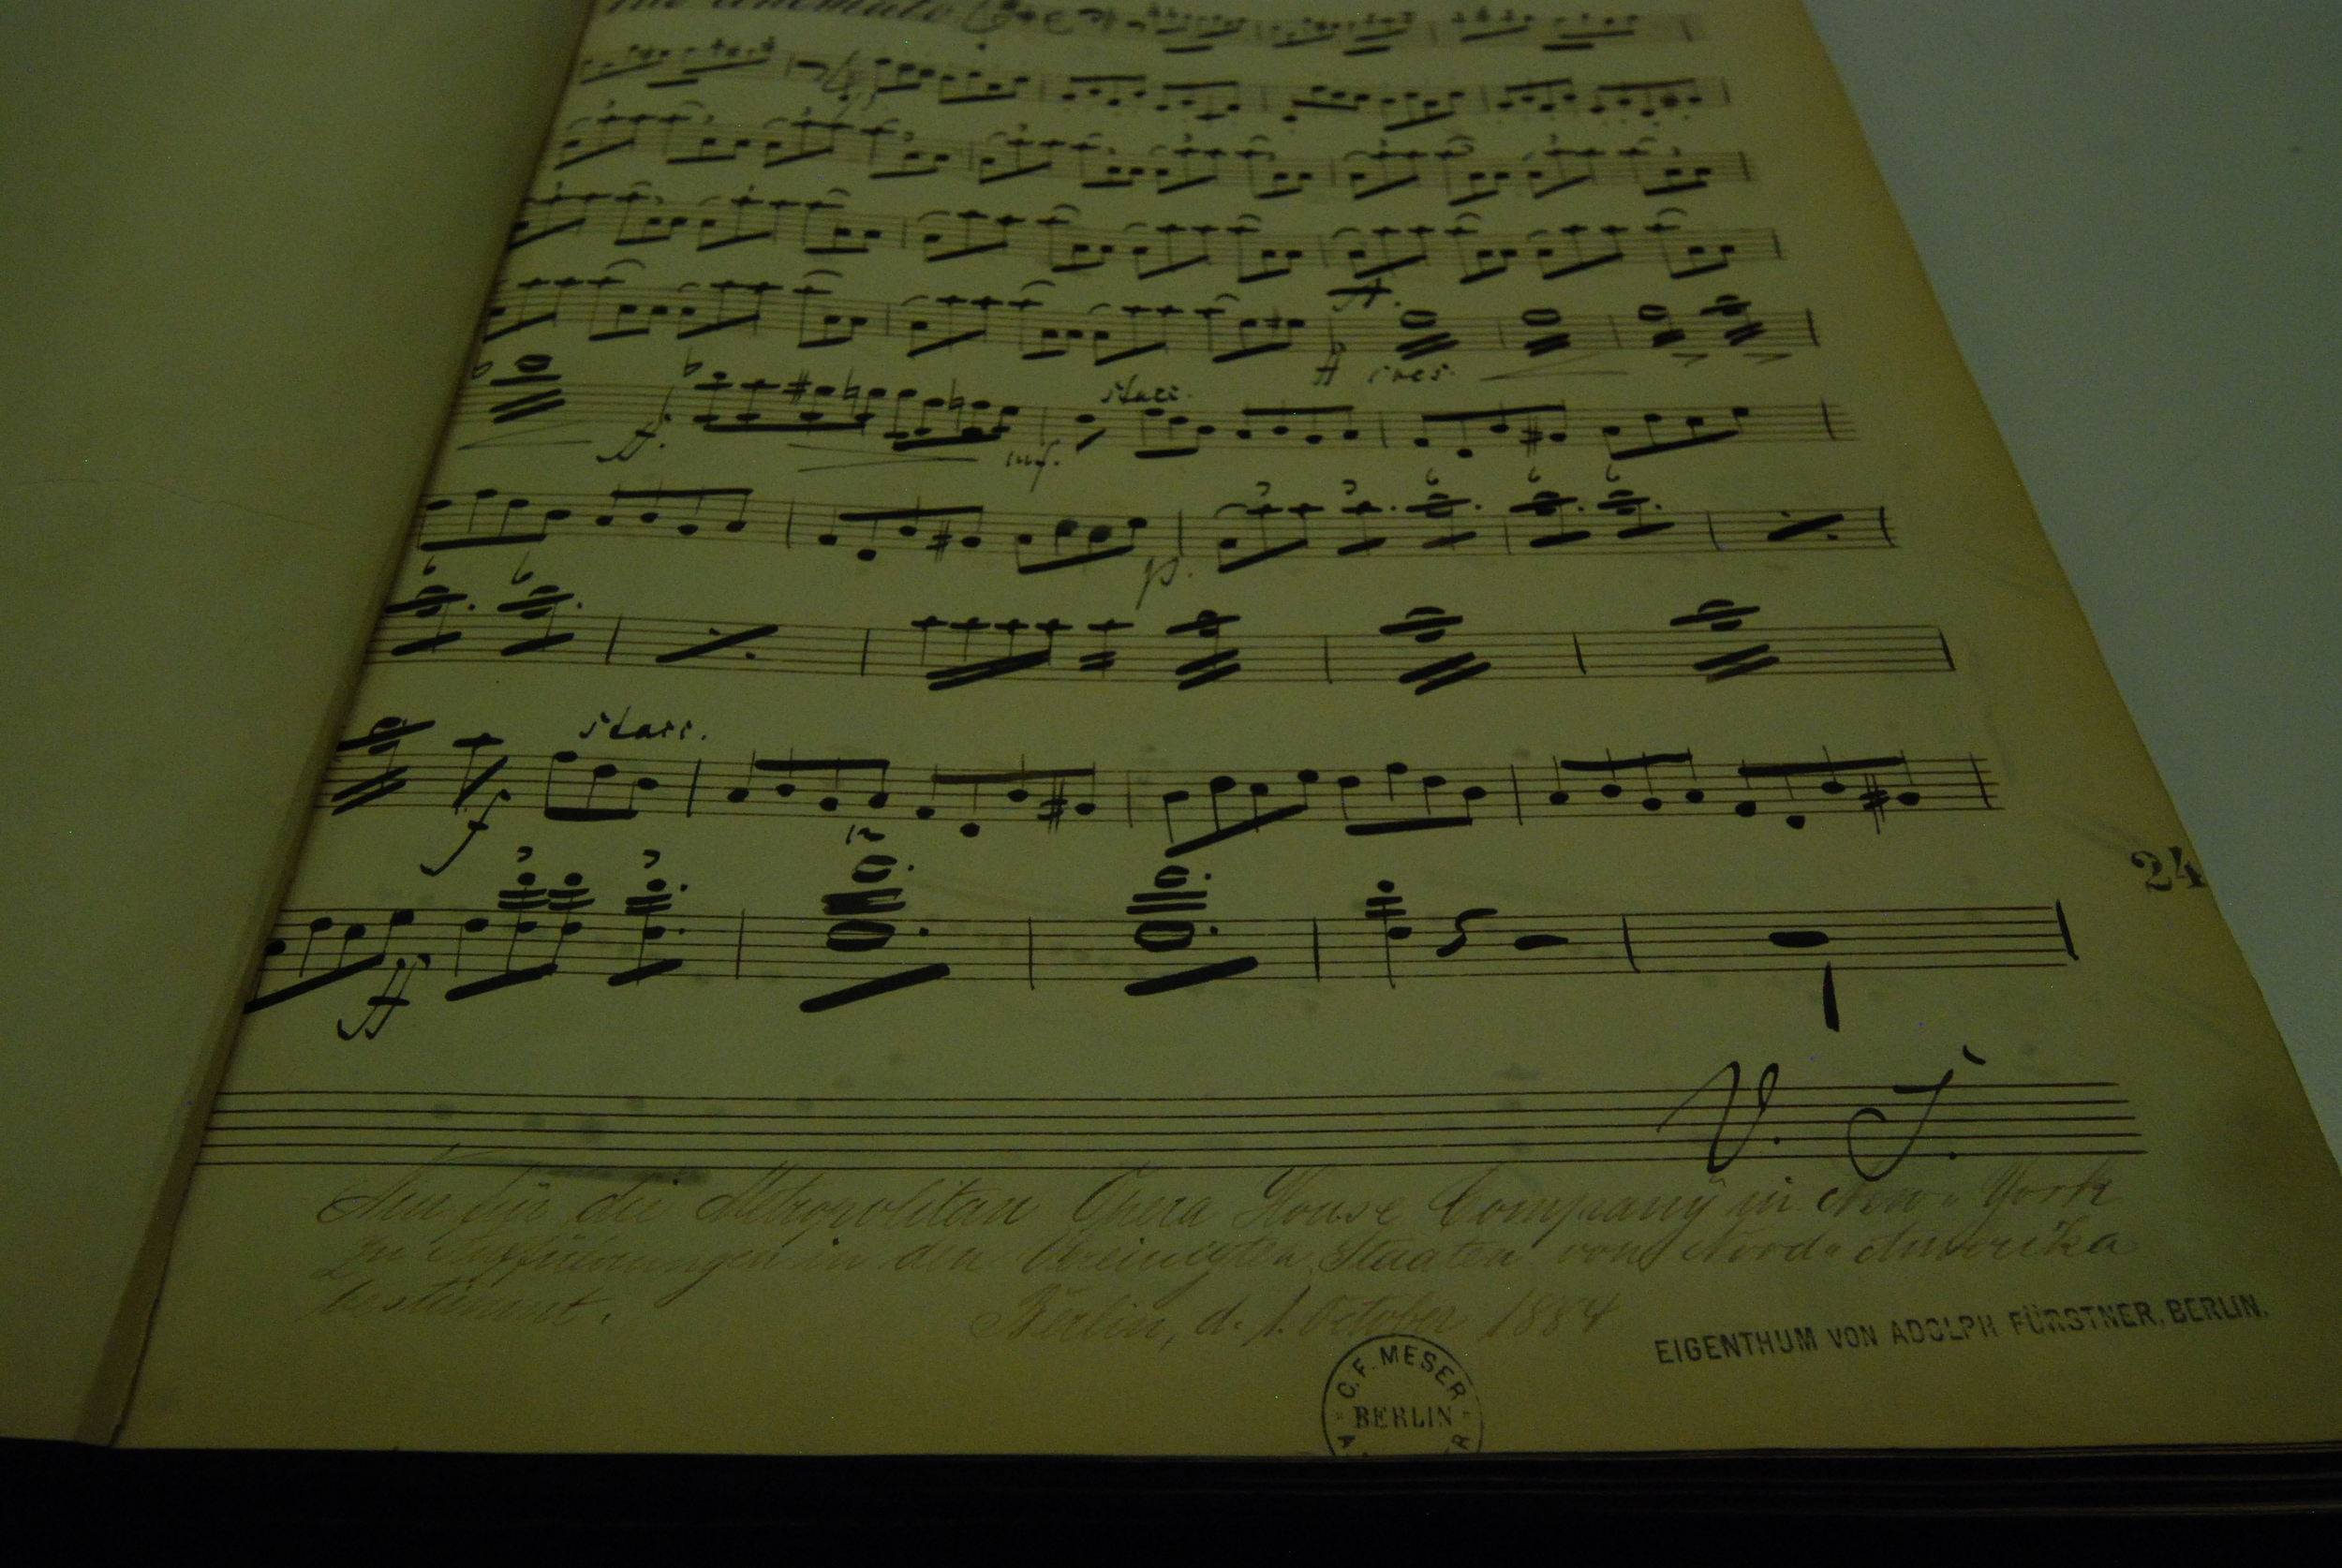 Dating from 1884, this  Rienzi  part was hand-engraved in Berlin for use by the Metropolitan Opera.